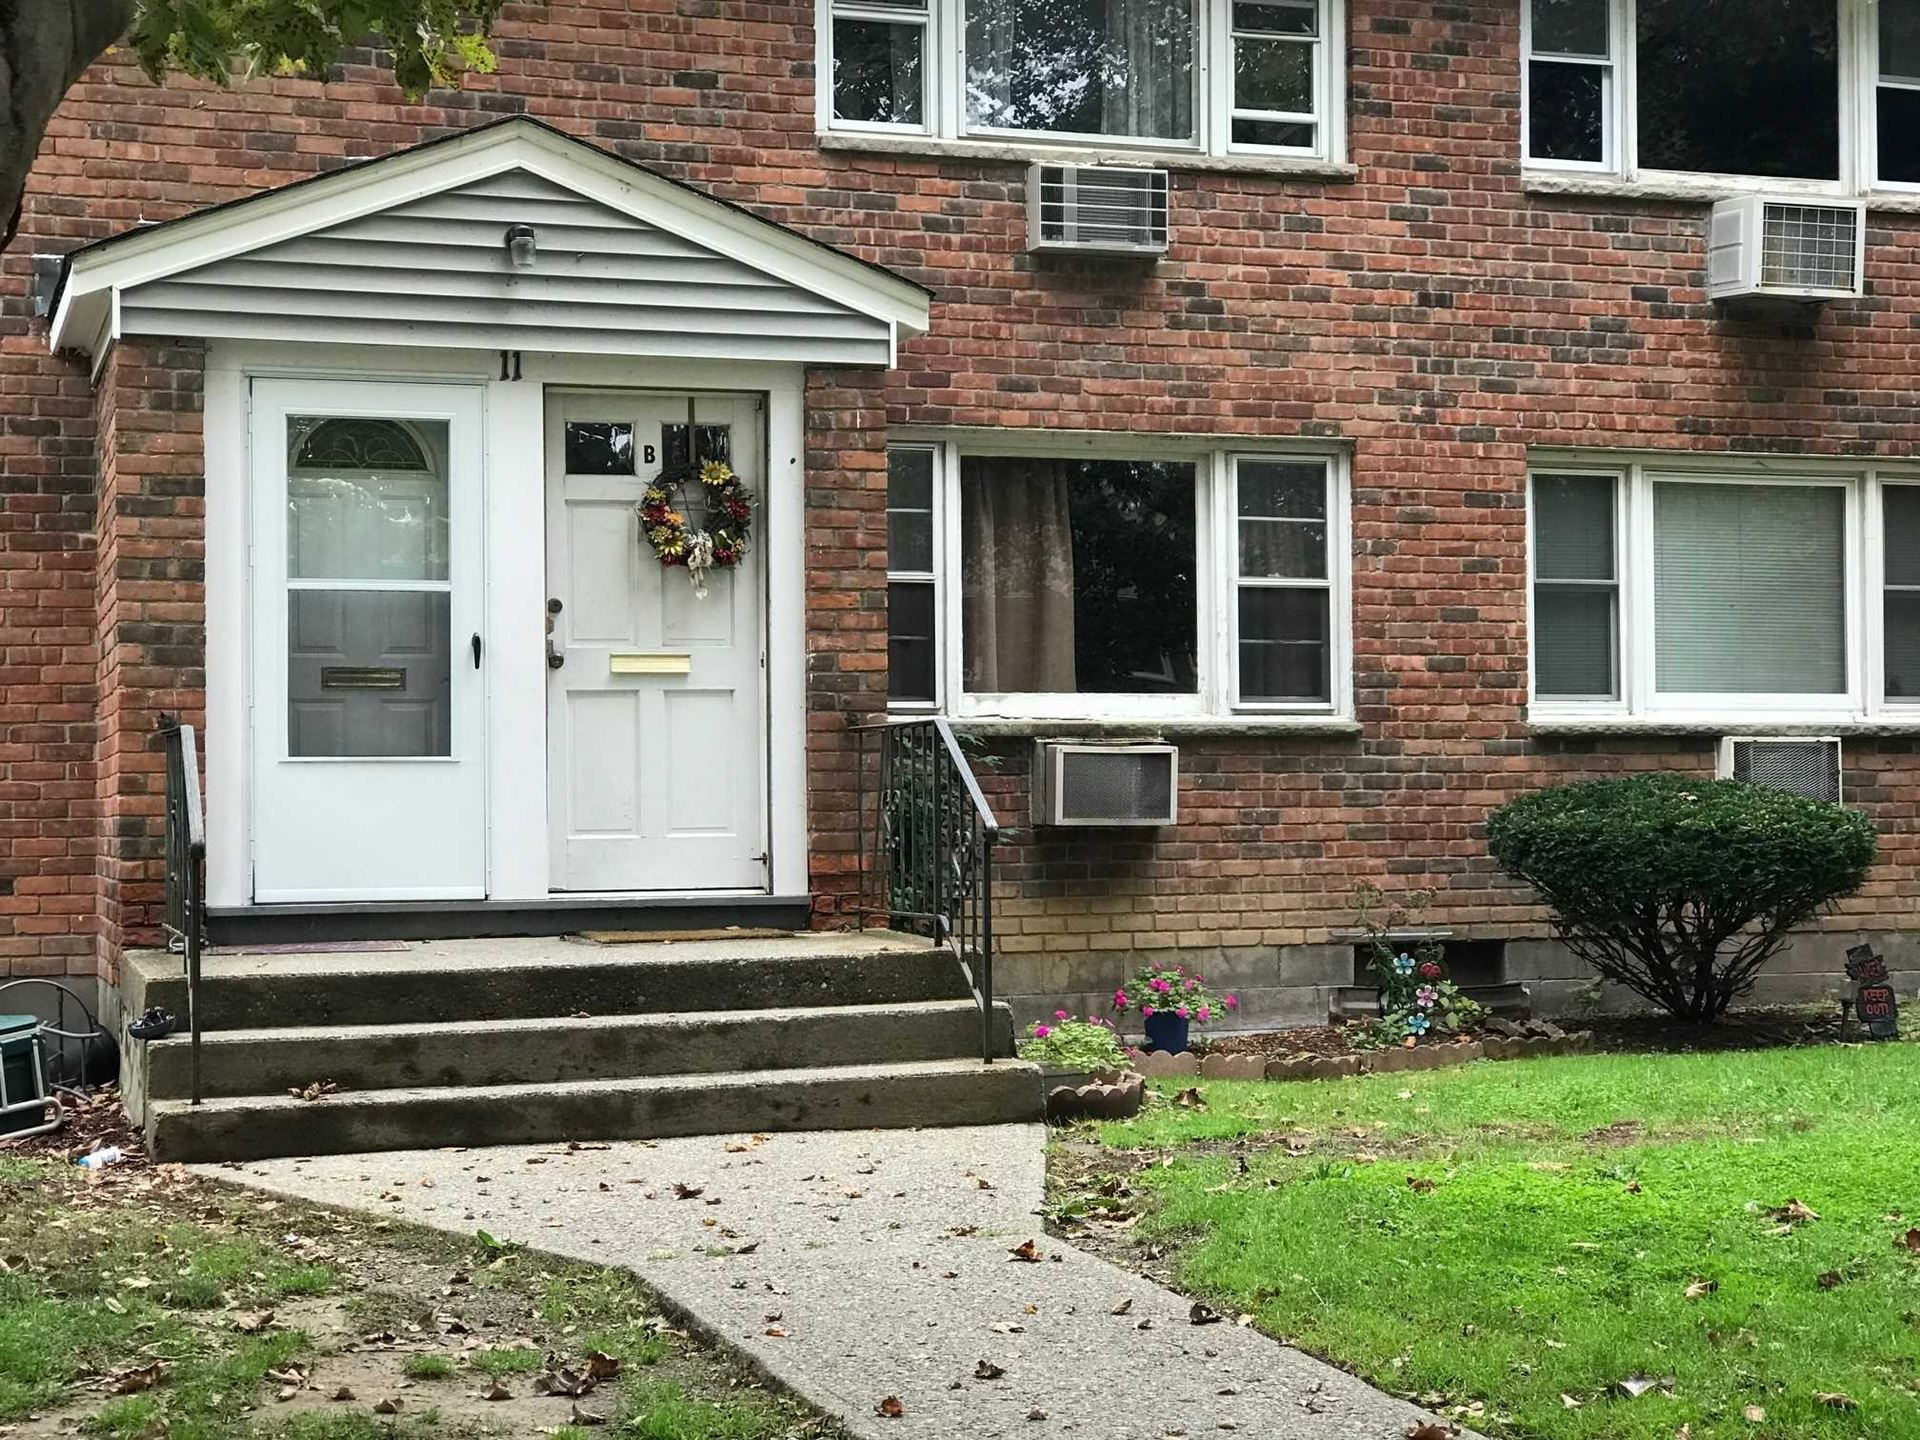 1668 ROUTE 9 UNIT 11B, Wappingers Falls, NY 12590 - #: 404133